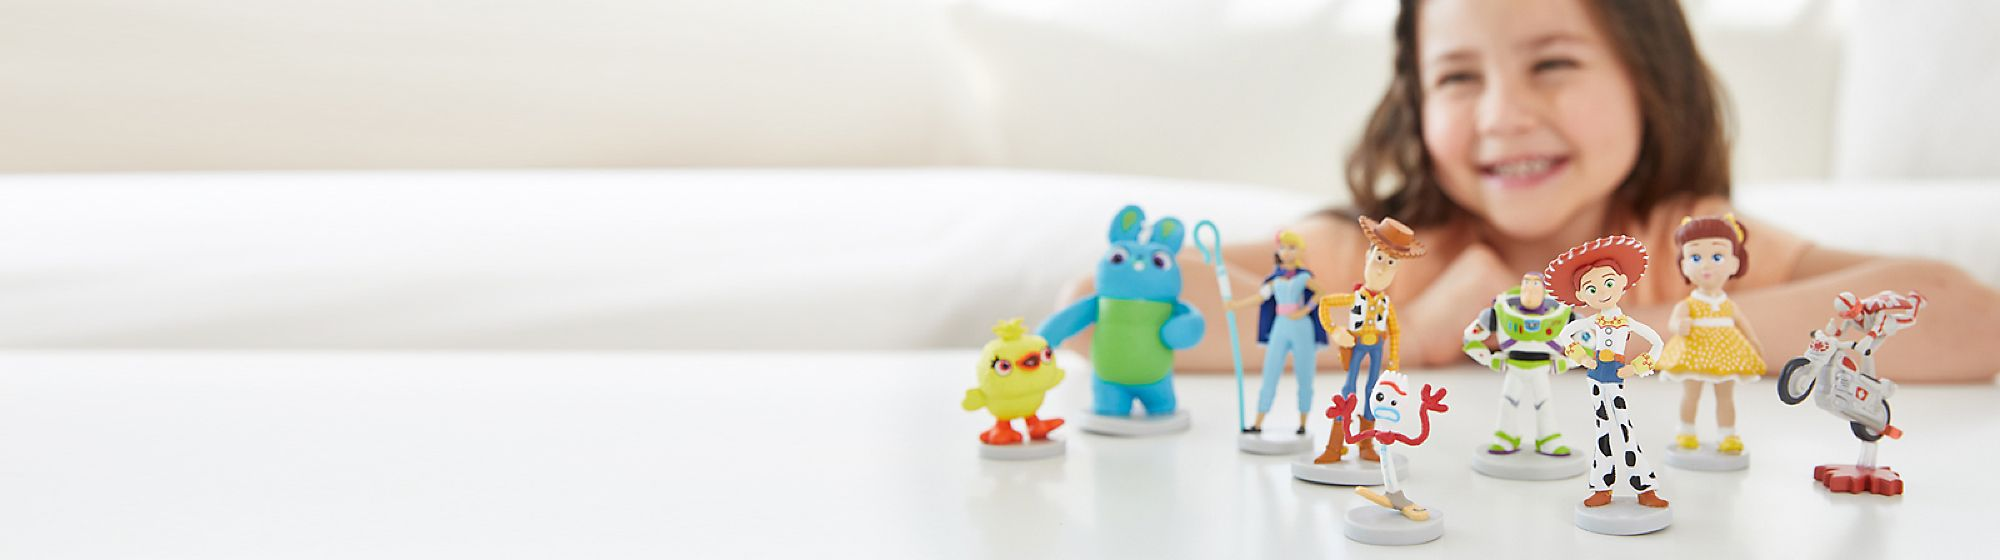 Play Sets Make playtime more magical with our range of Disney, Pixar, Star Wars and Marvel play sets